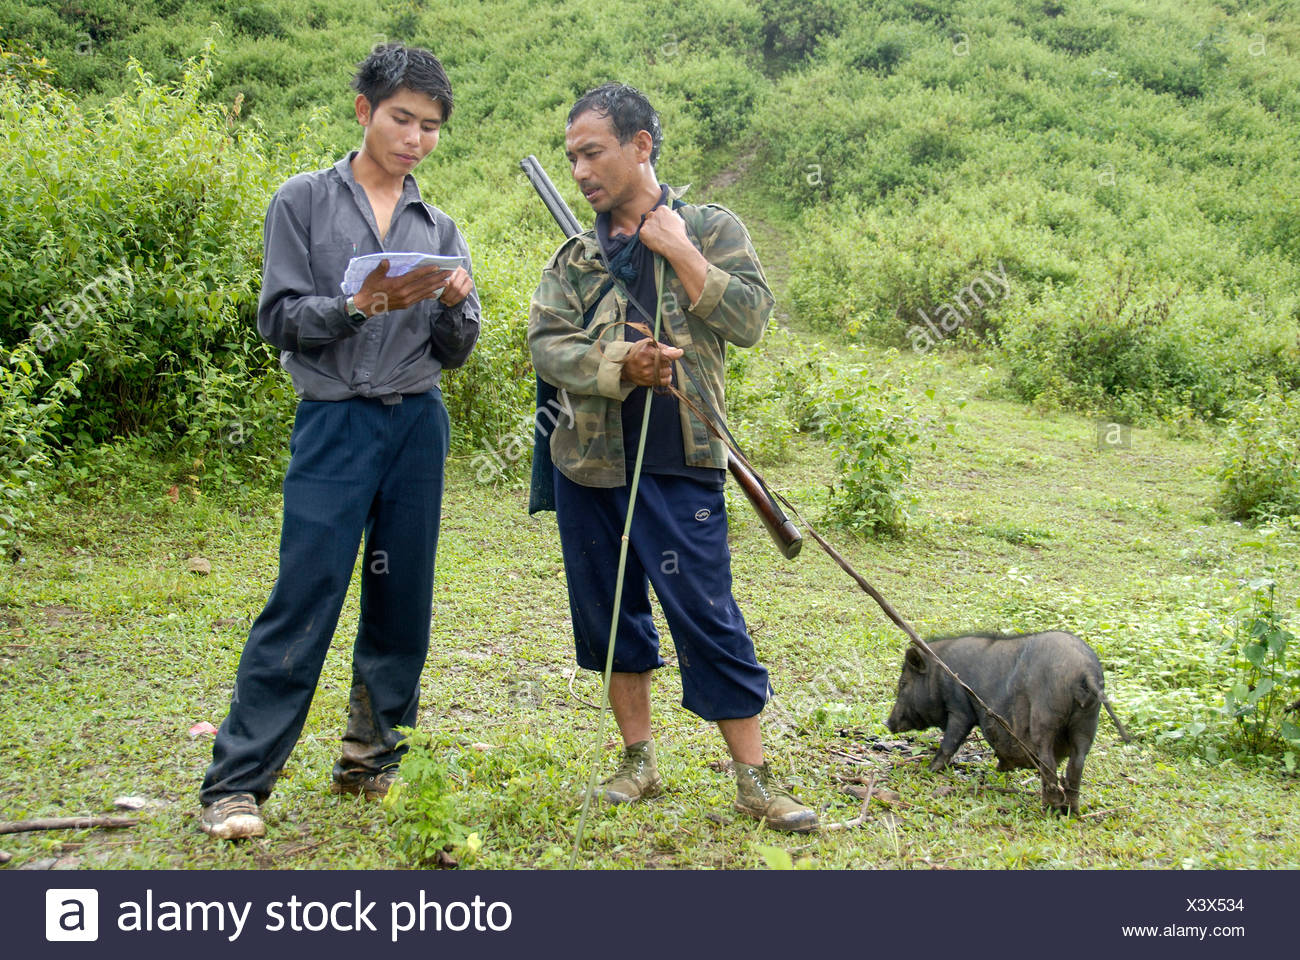 Laotians in conversation, the man Pixor Akha ethnic group with pork and a rifle in the wilderness, rifle, hunting, Phongsali di - Stock Image